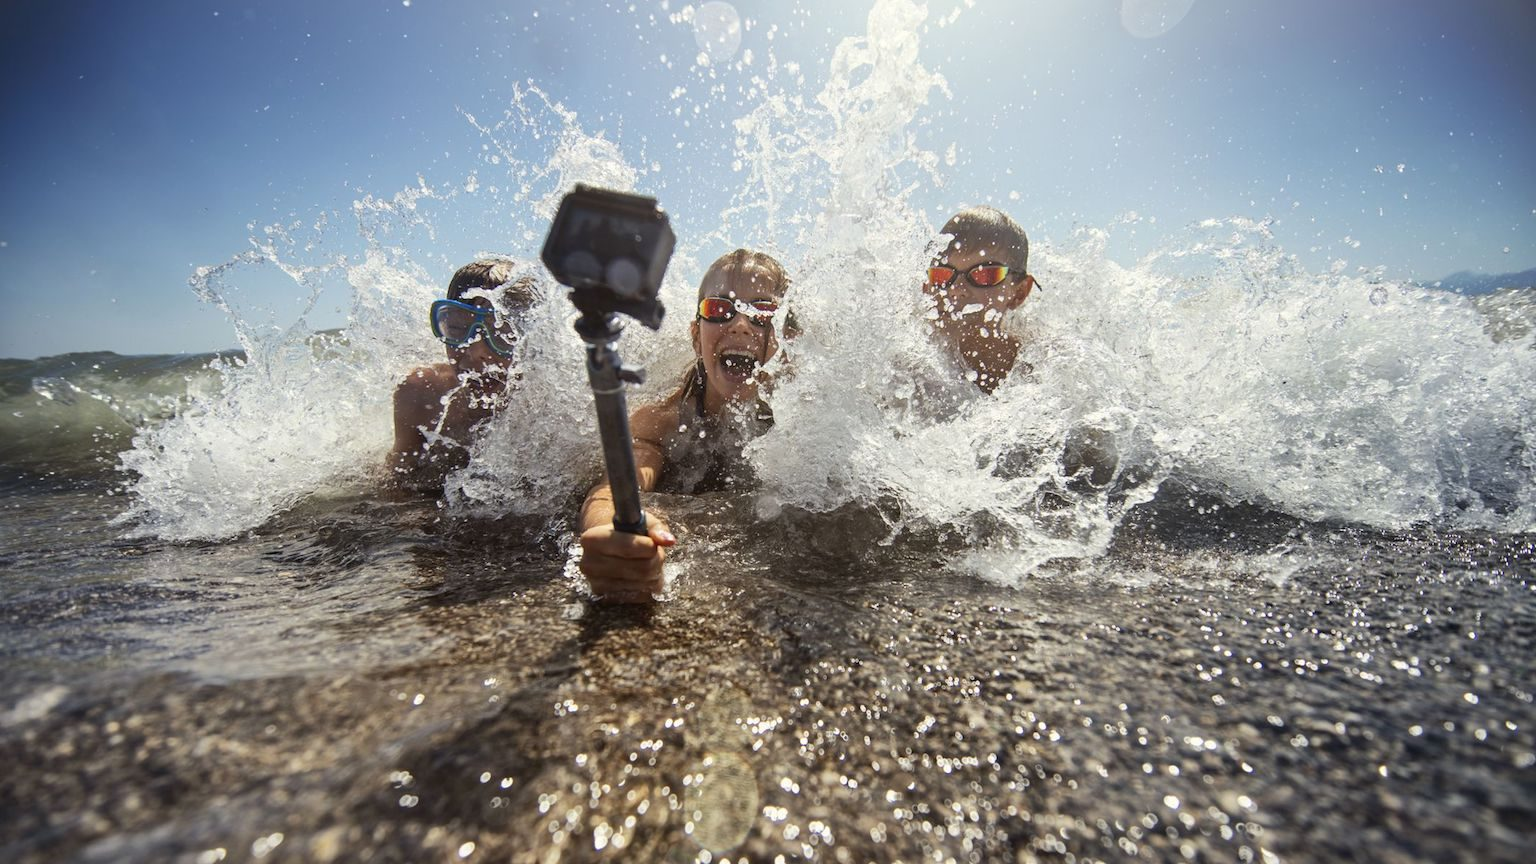 Three kids using an action camera to record themselves splashing in the surf